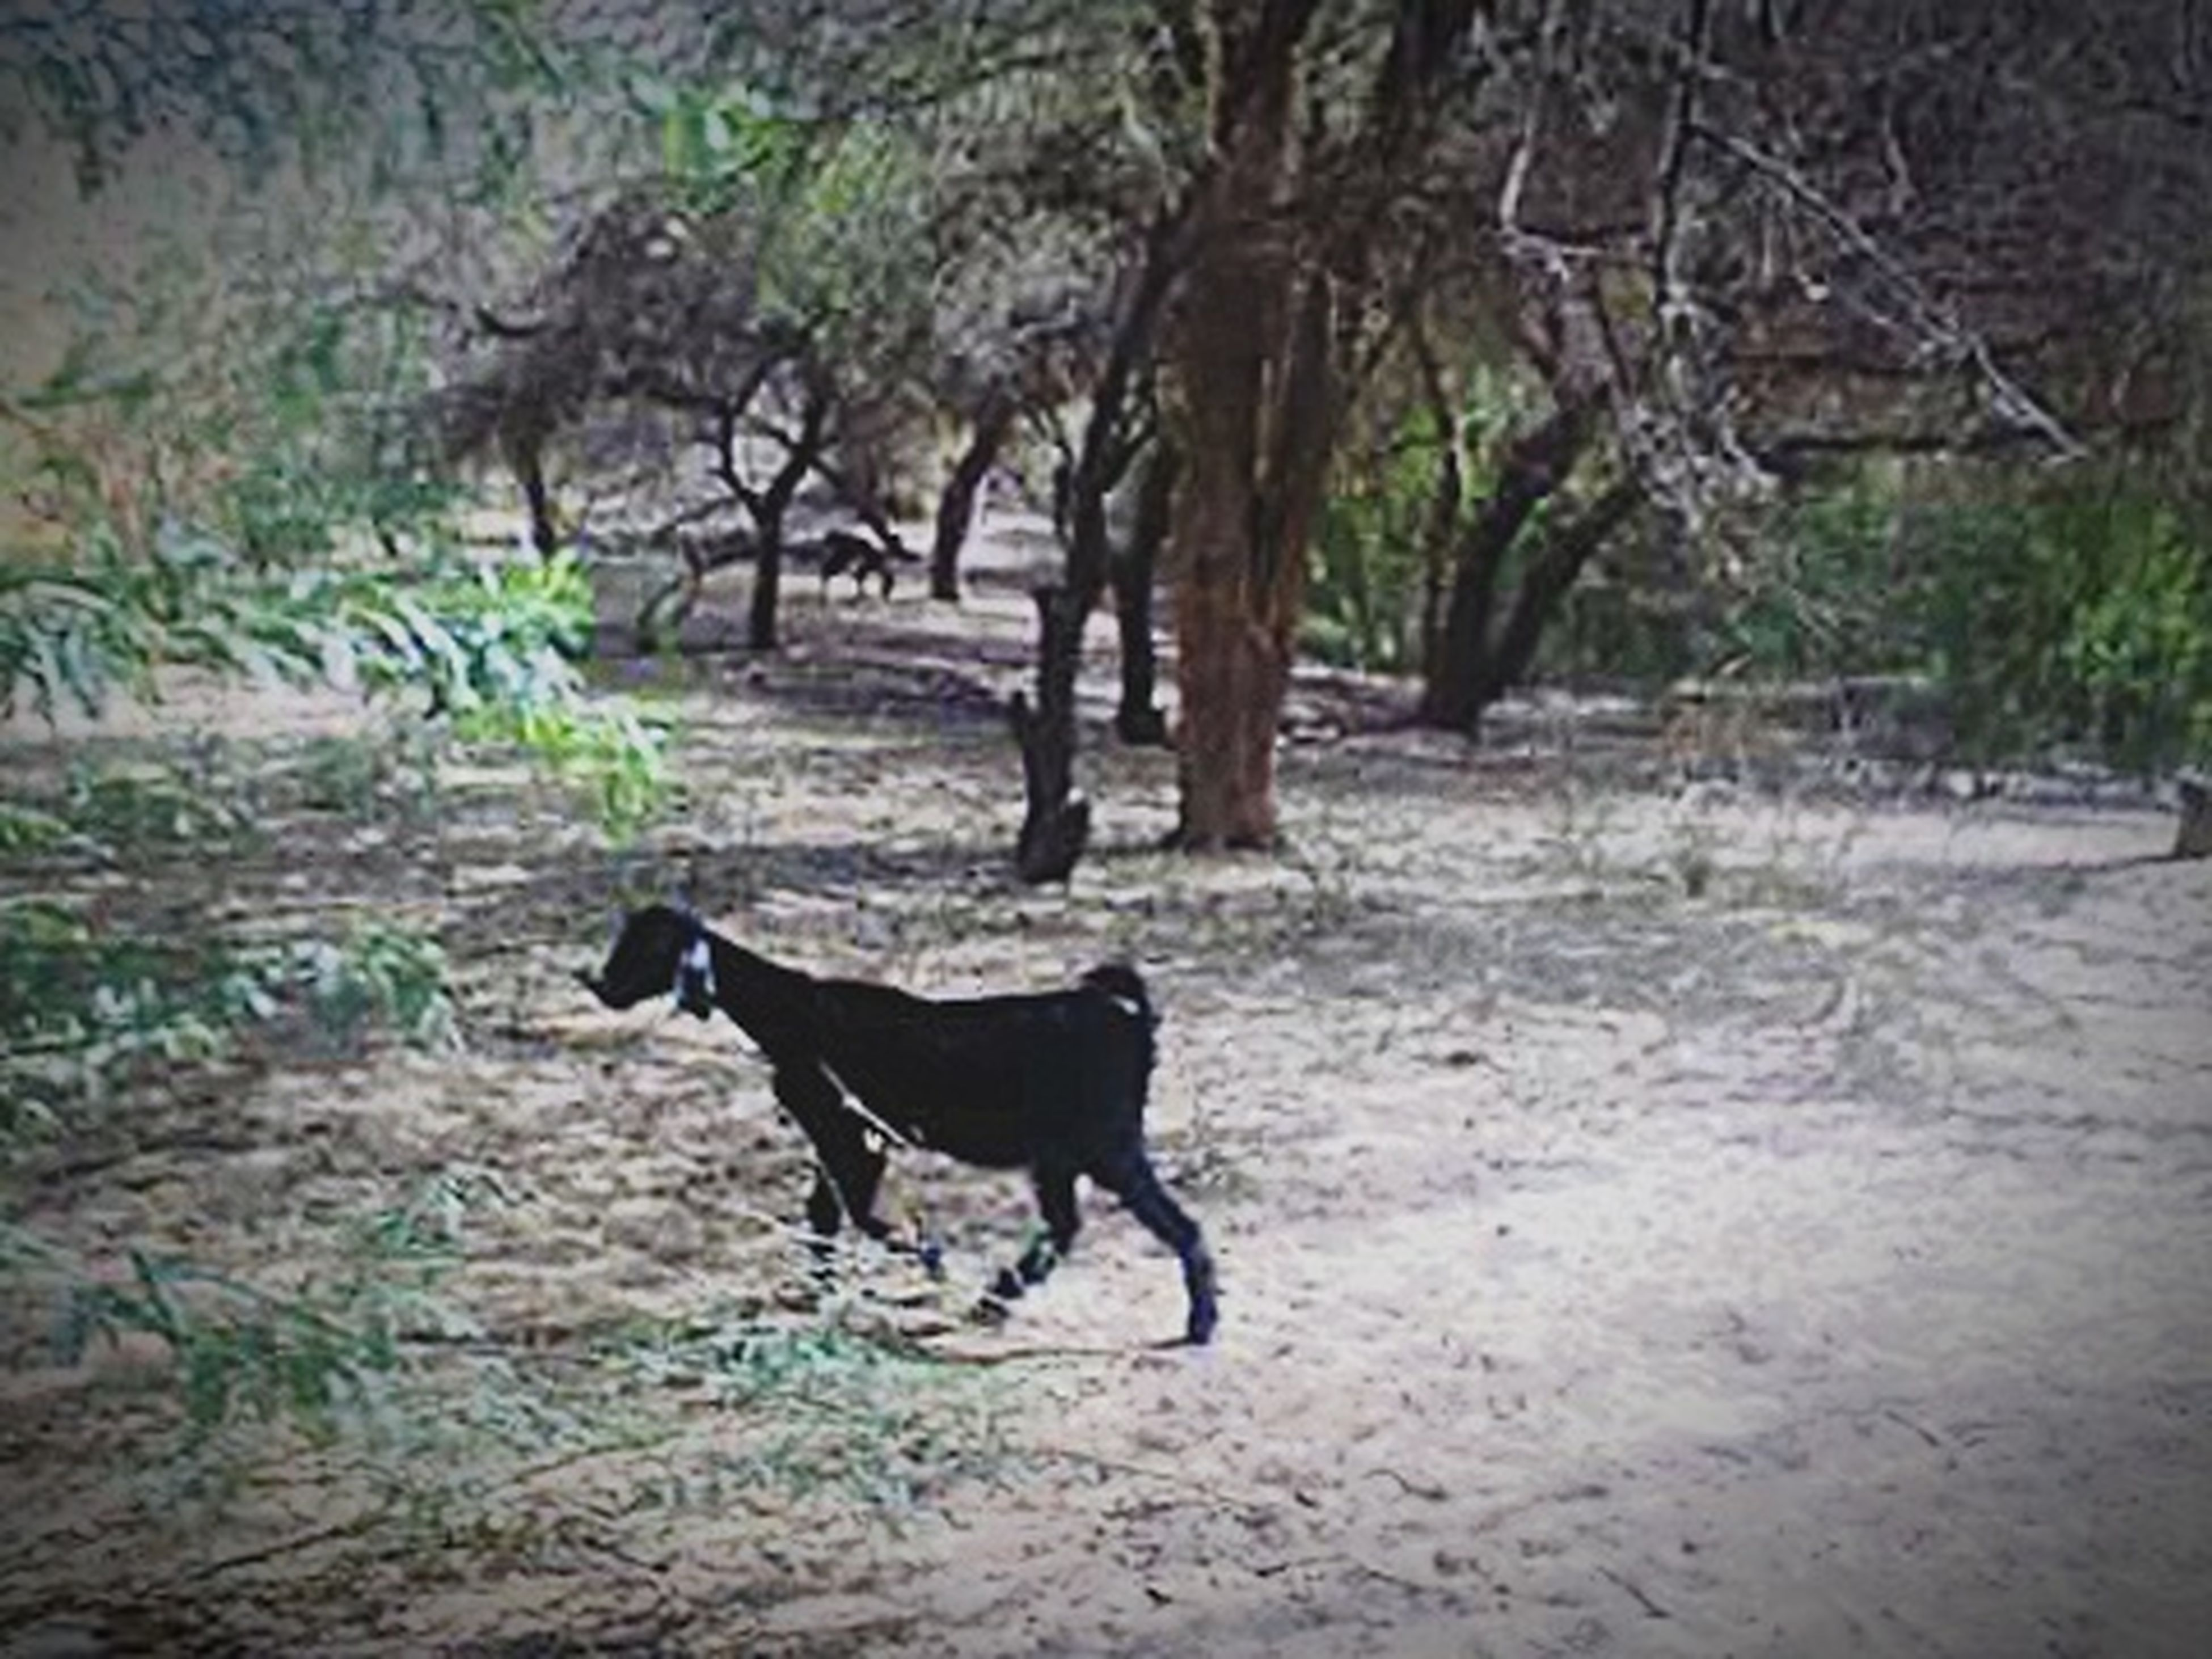 domestic animals, pets, mammal, animal themes, one animal, dog, standing, field, full length, walking, black color, looking at camera, pet collar, portrait, nature, outdoors, day, tree, grass, no people